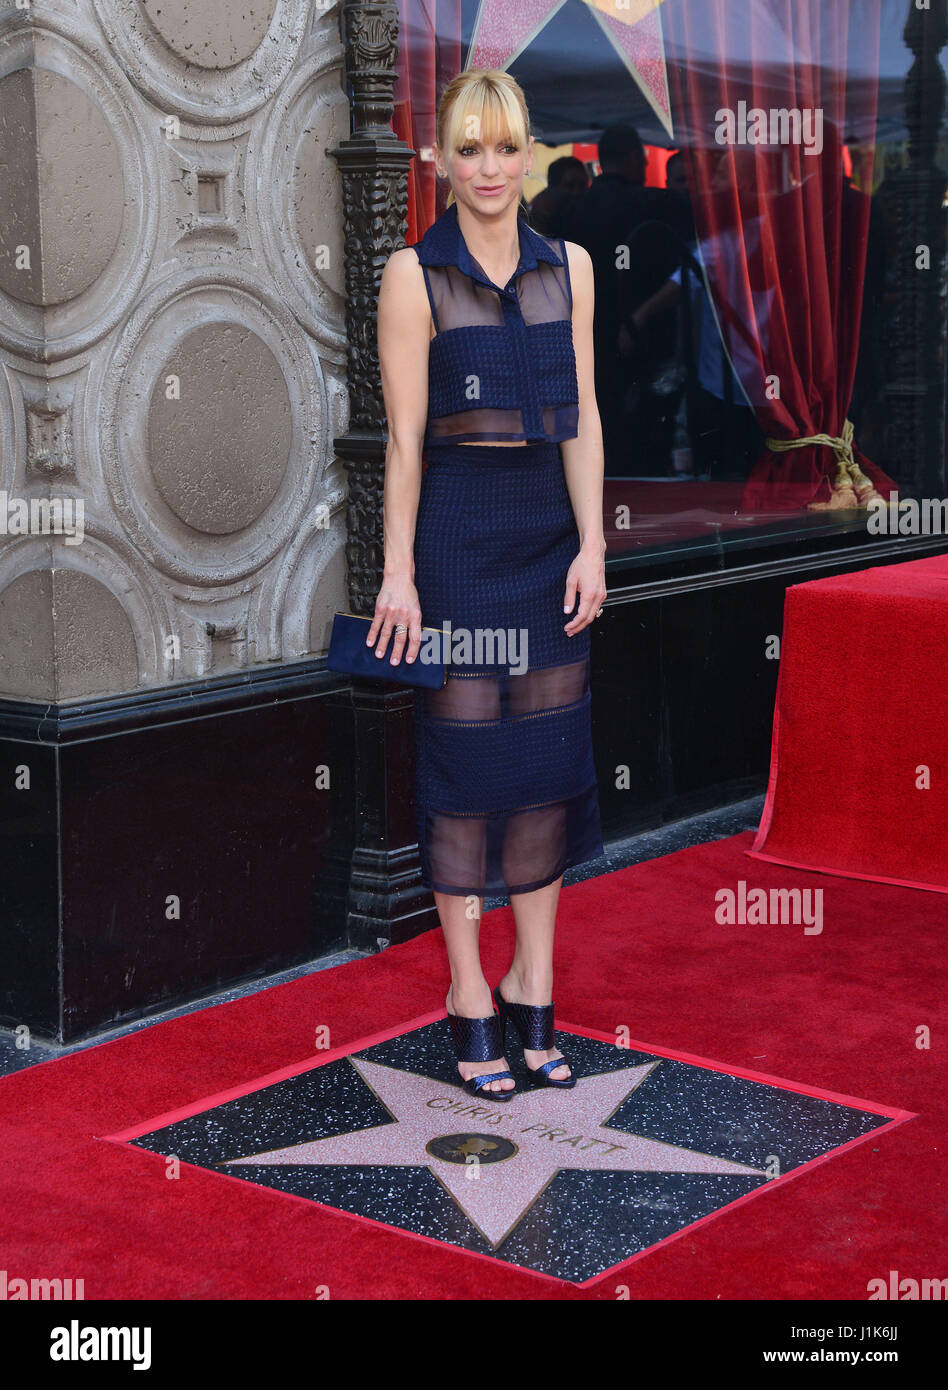 Anna Faris 032 at the Chris Pratt Star ceremony on the Hollywood Walk of Fame in Los Angeles. April 21, 2017 - Stock Image